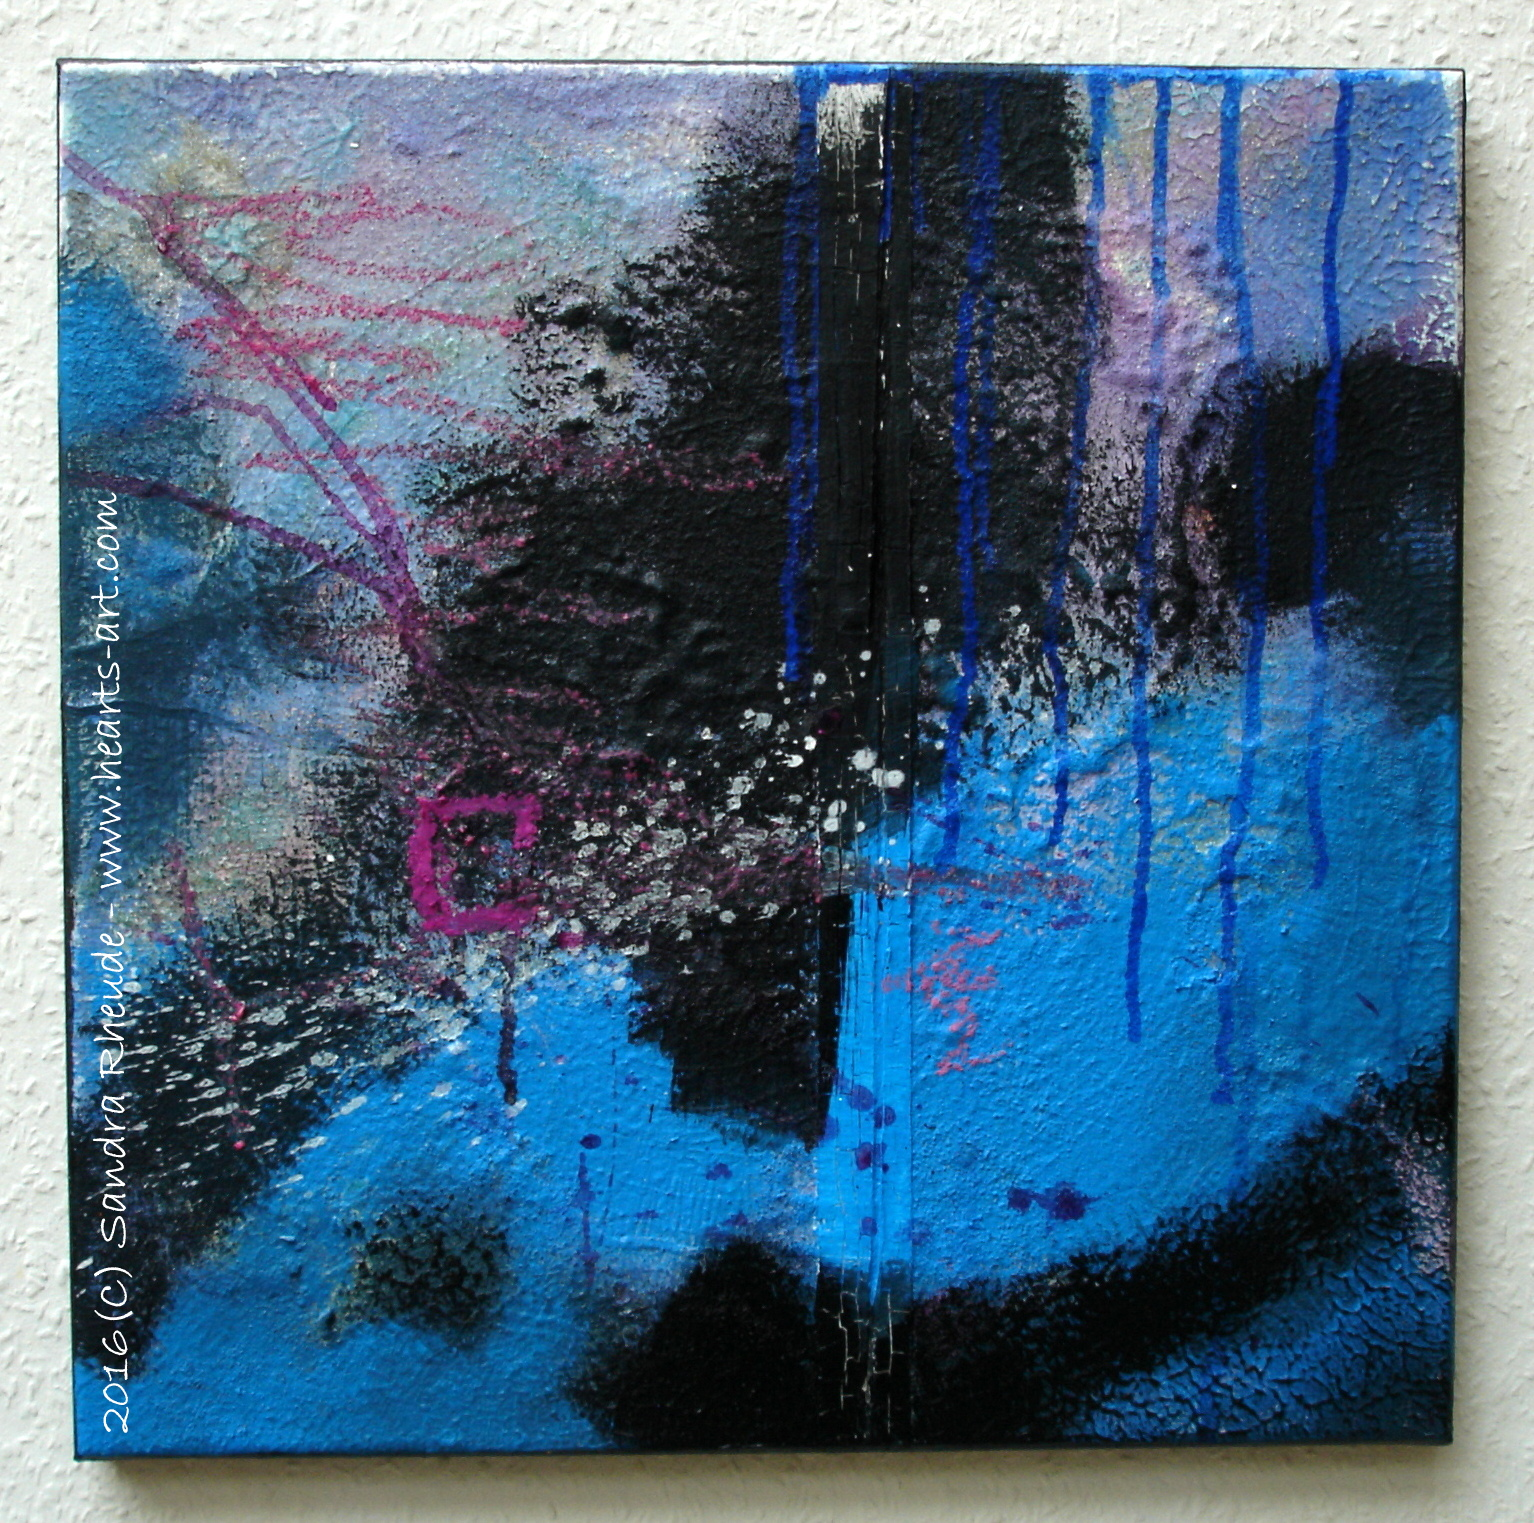 'Beyond the Blue' - 2016/28 - Acryl/MixedMedia auf Leinwand - 40 x 40 x cm - € 220